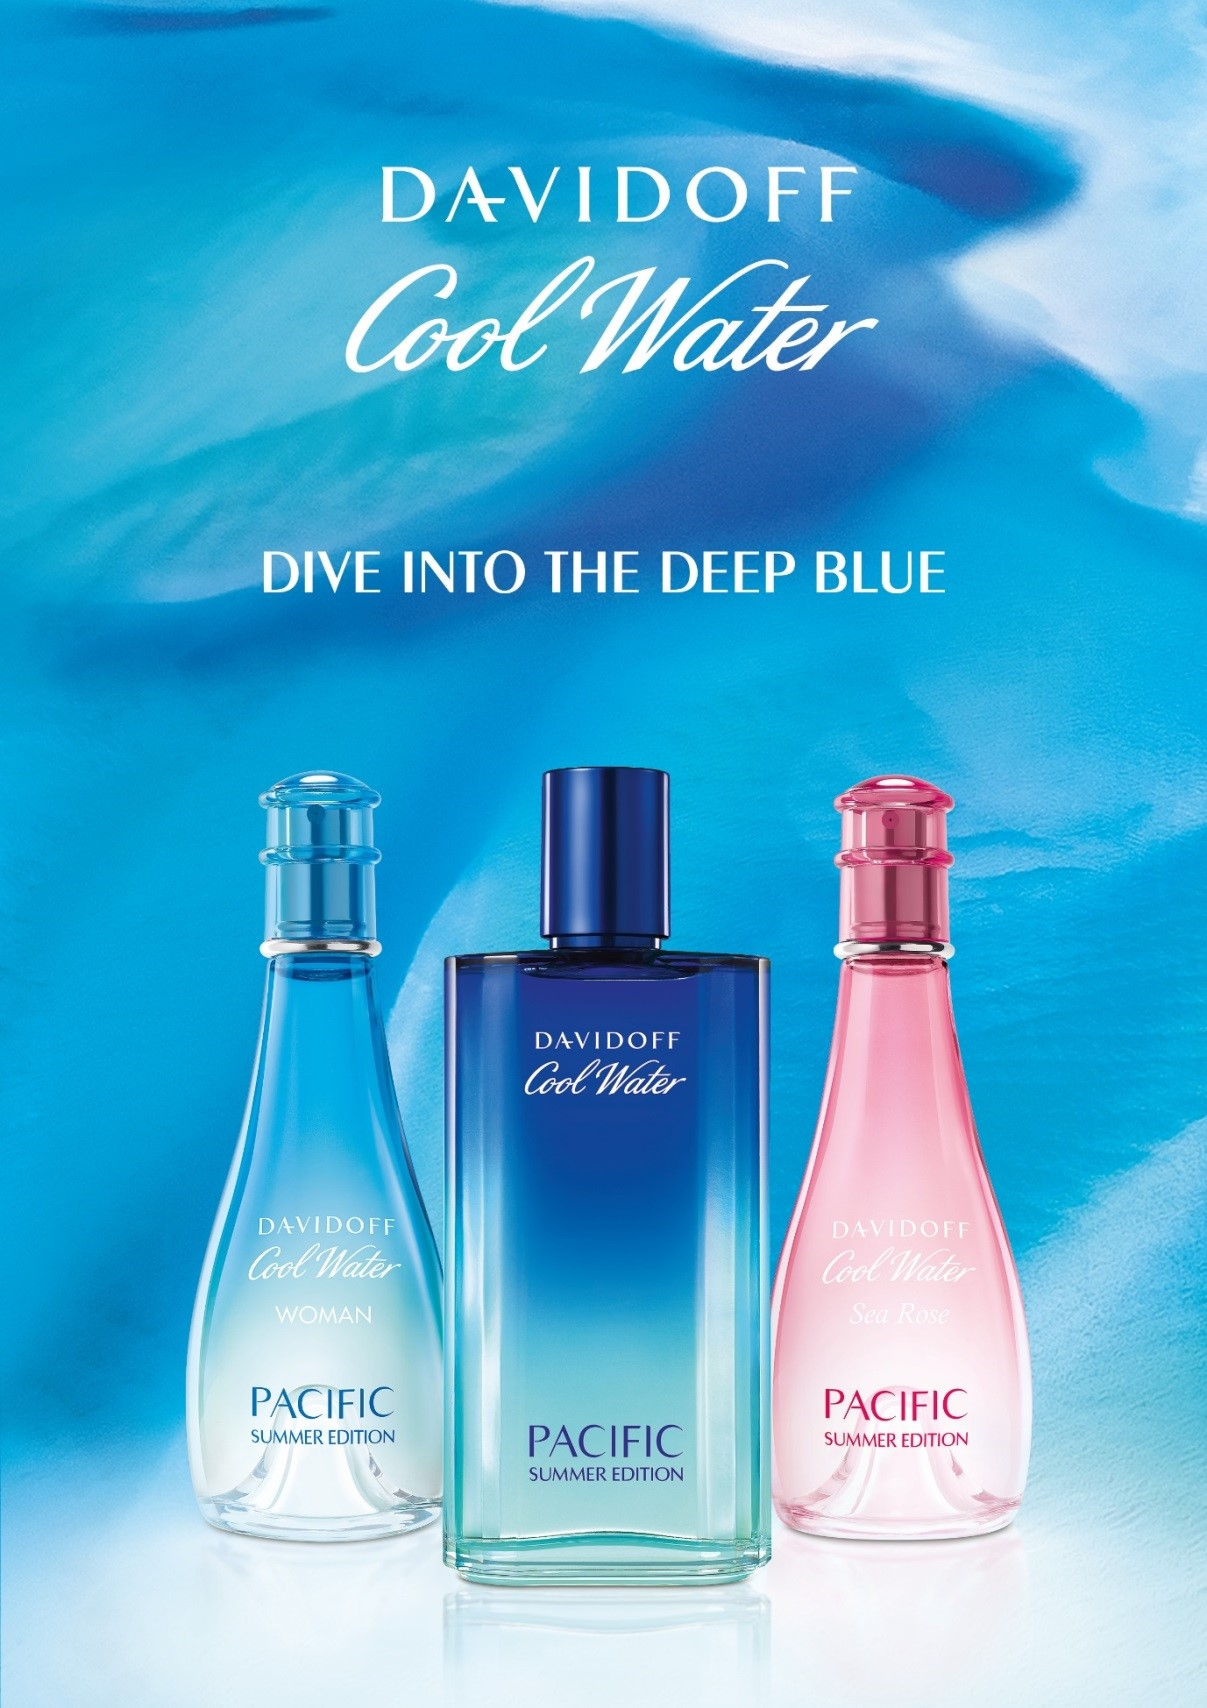 32a1f428e88 Cool Water Woman Sea Rose Pacific Summer Edition Davidoff for women  Pictures ...